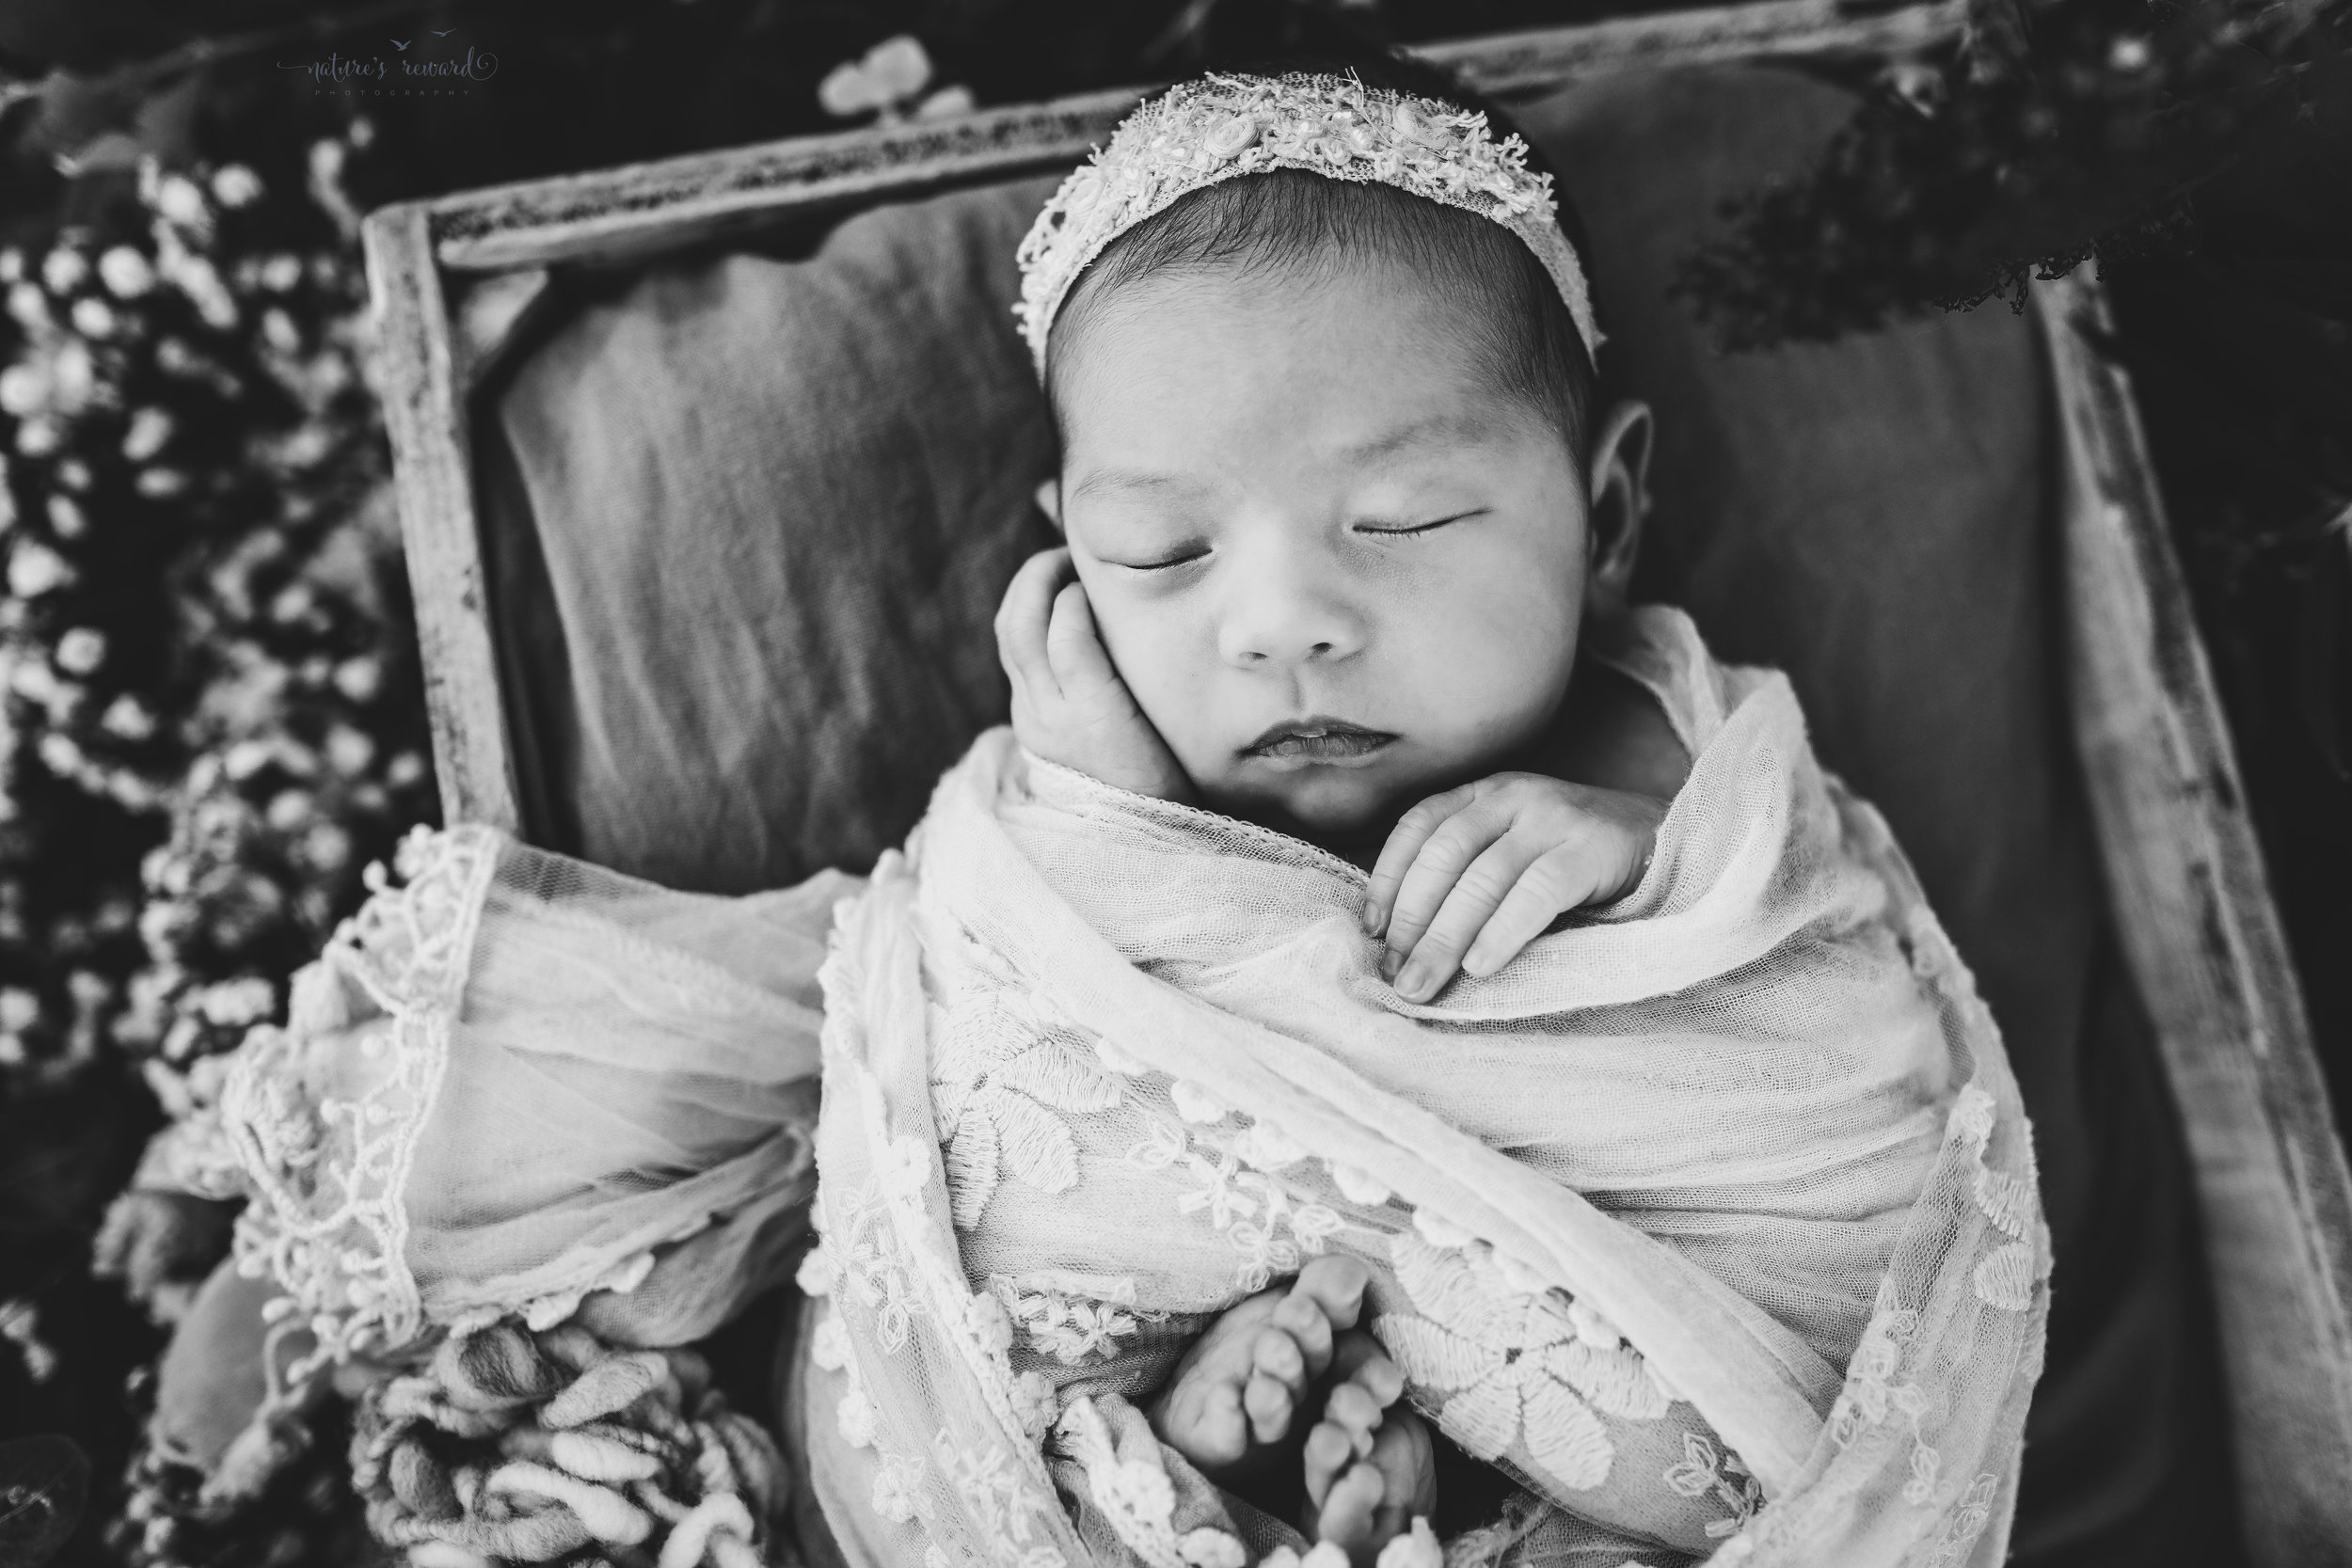 Gorgeous black and white baby newborn girl swaddled in pink wearing a white tie back and in a garden surrounded by lush greens and flowers in this portrait by Nature's Reward Photography